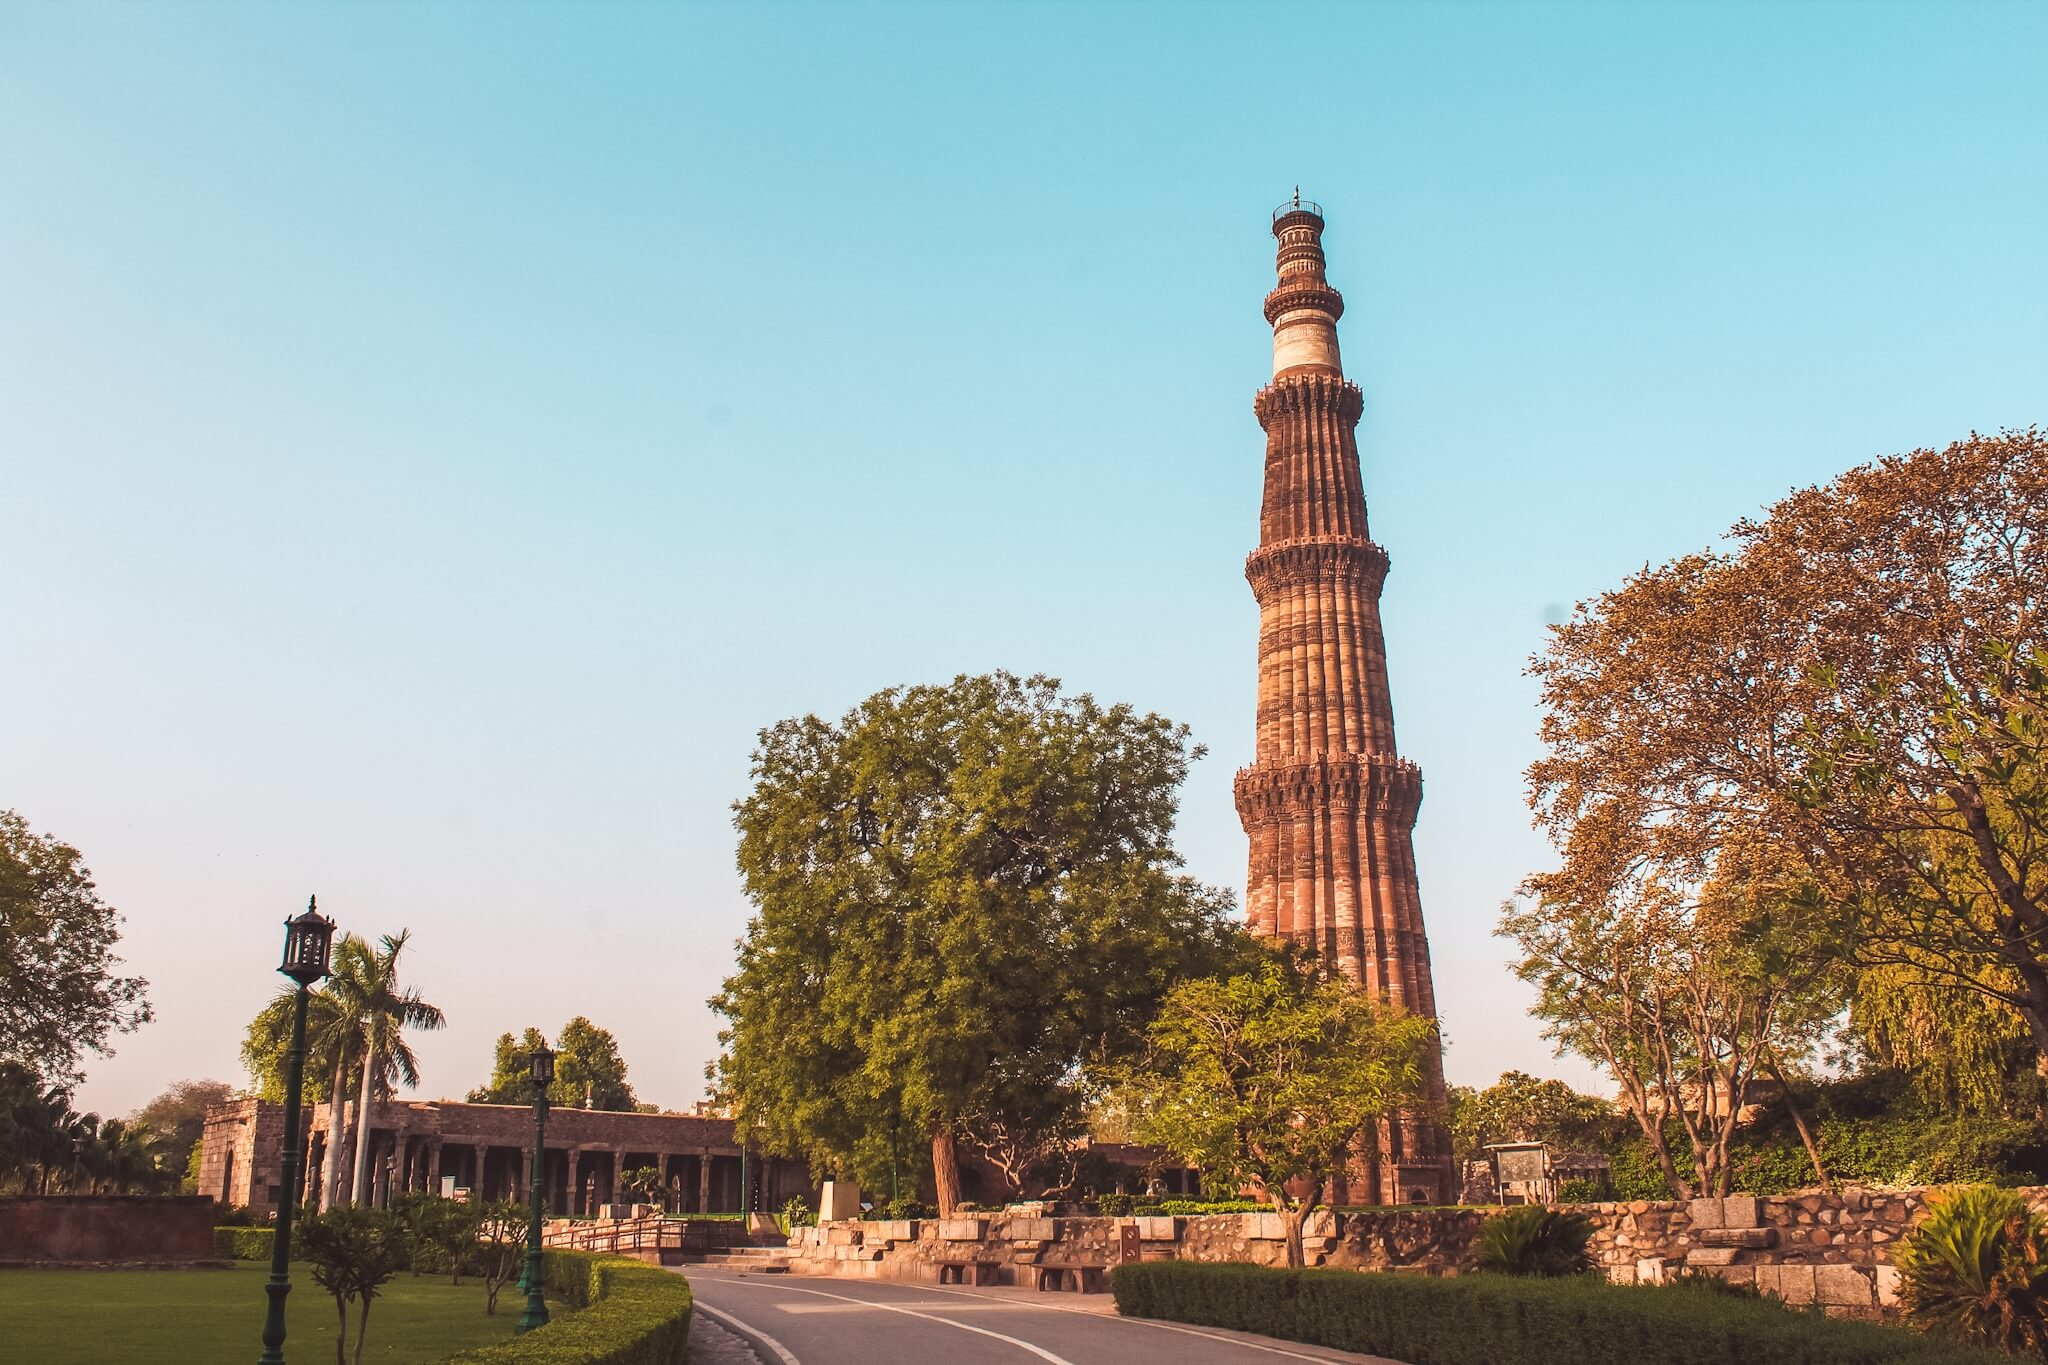 New Delhi Travel Guide: Expert Tips for Surviving India's Capital City